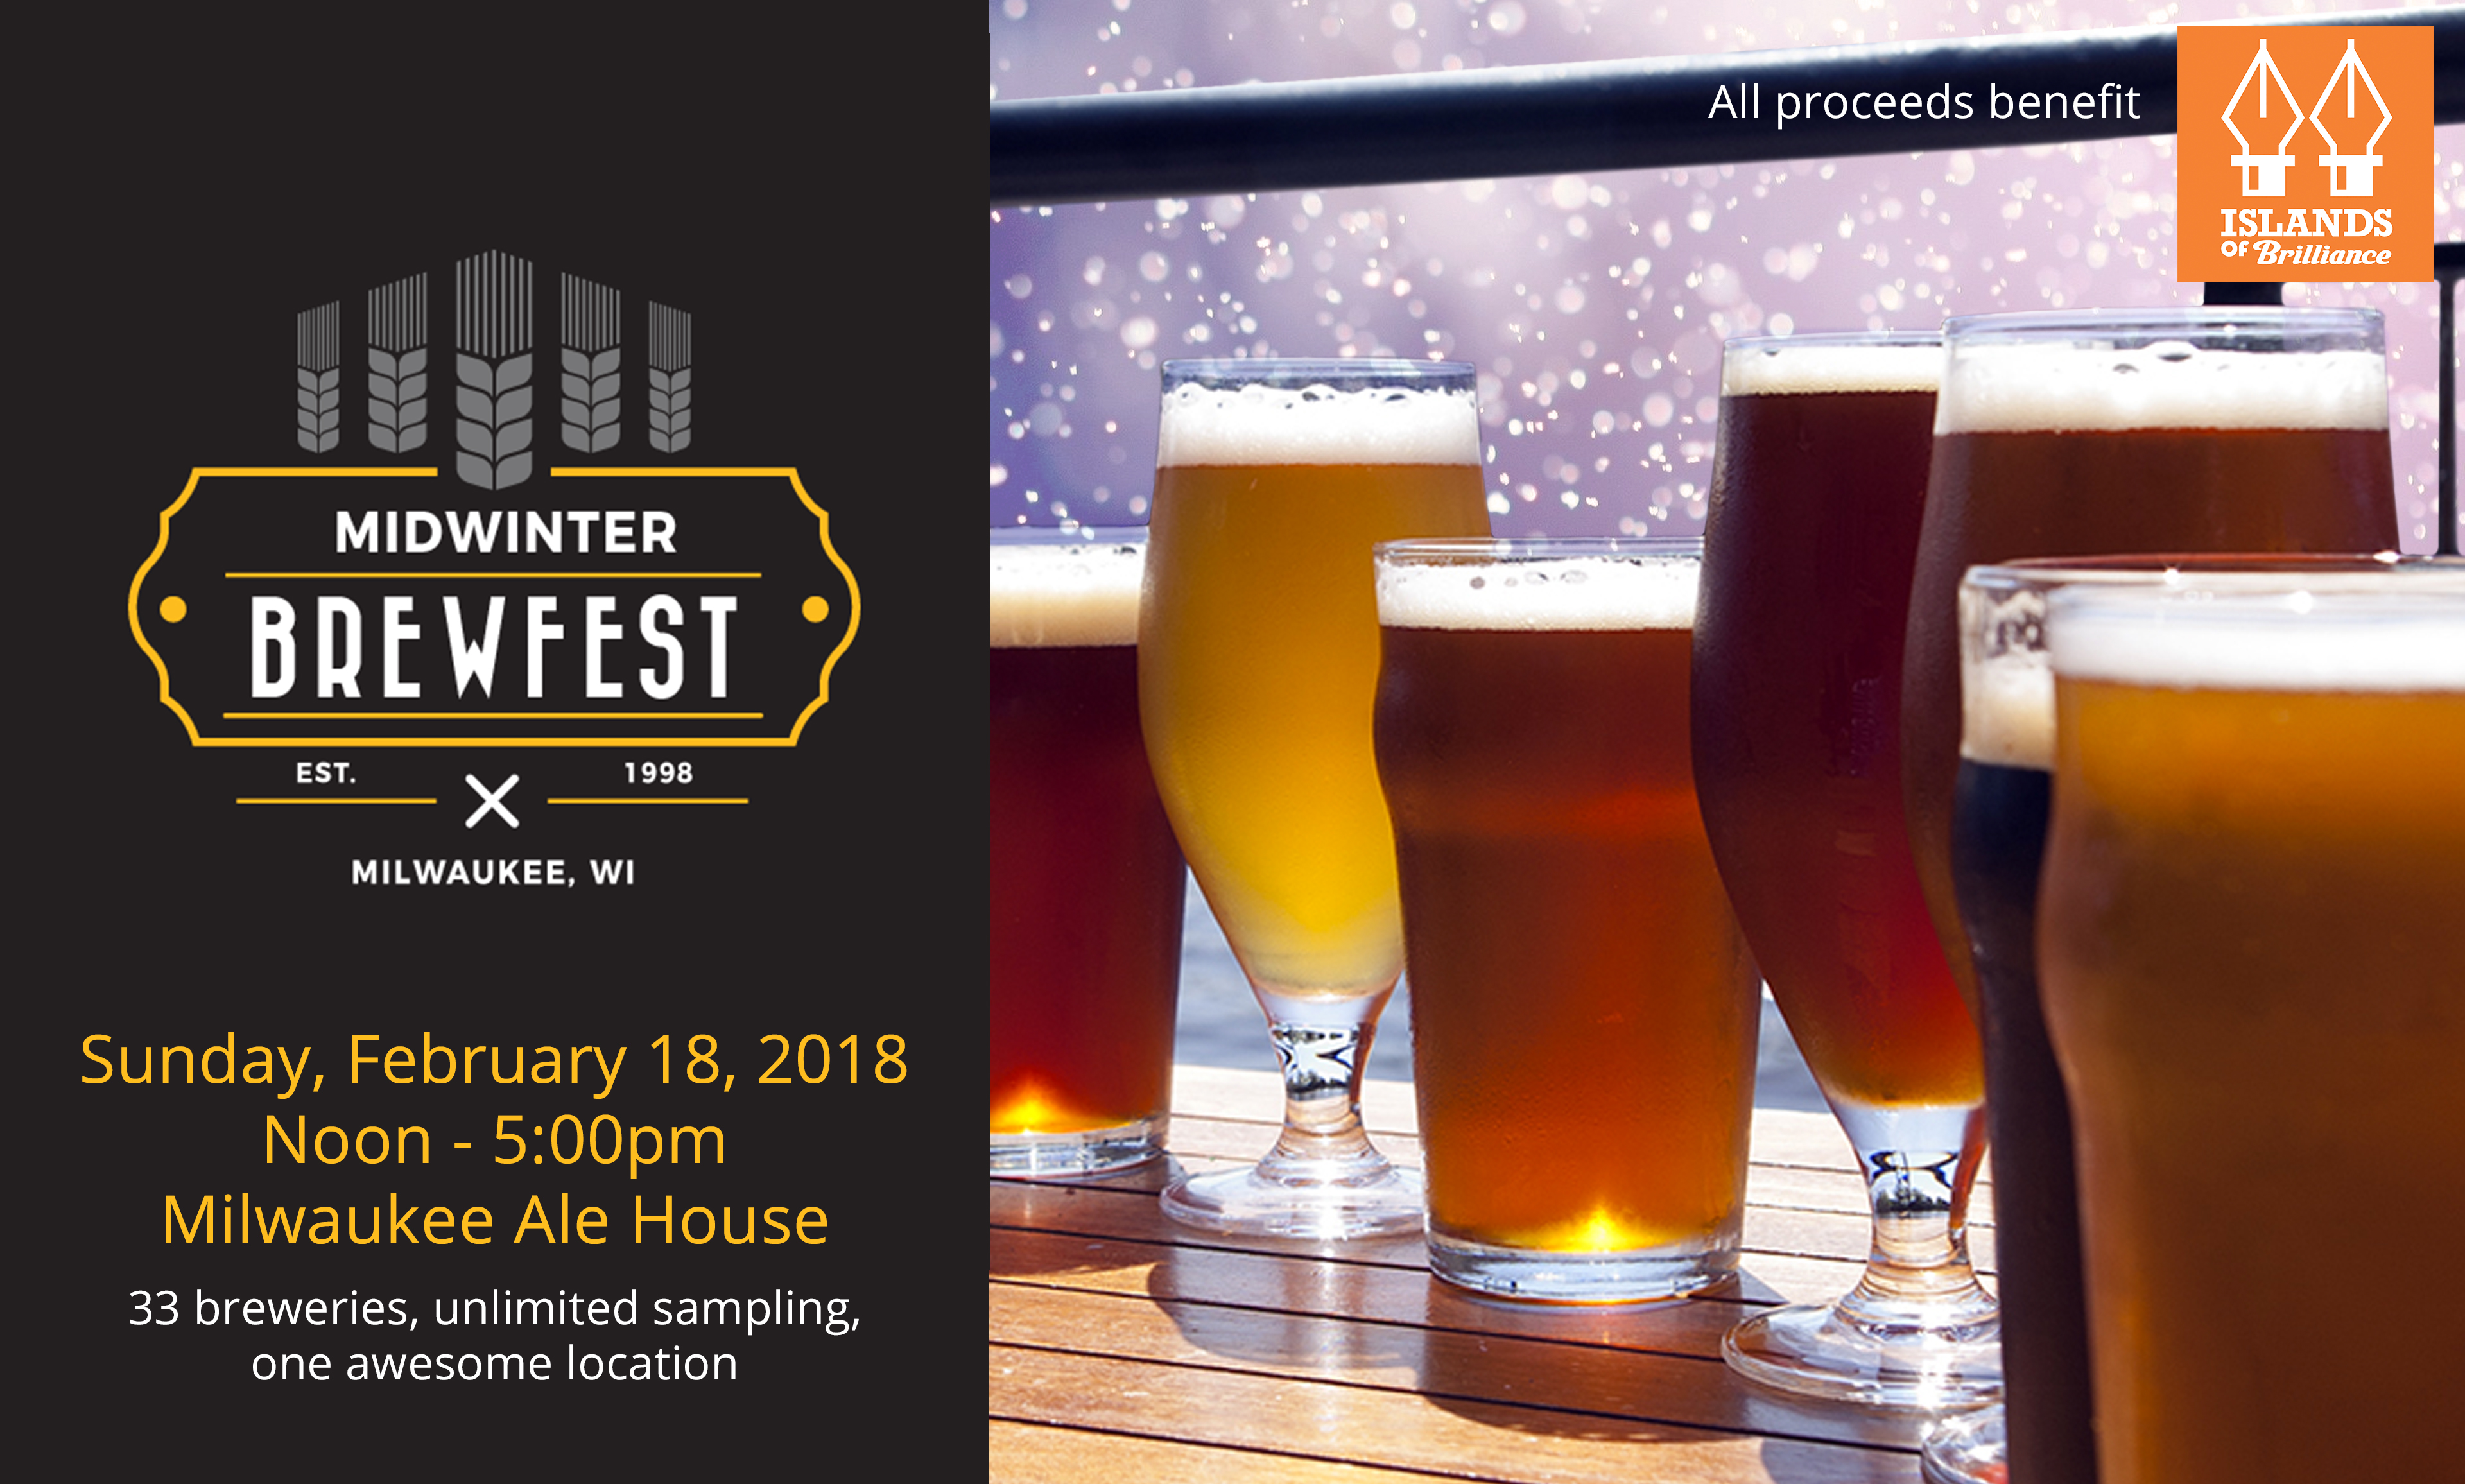 33 breweries, unlimited sampling, all supporting Islands of Brilliance!!